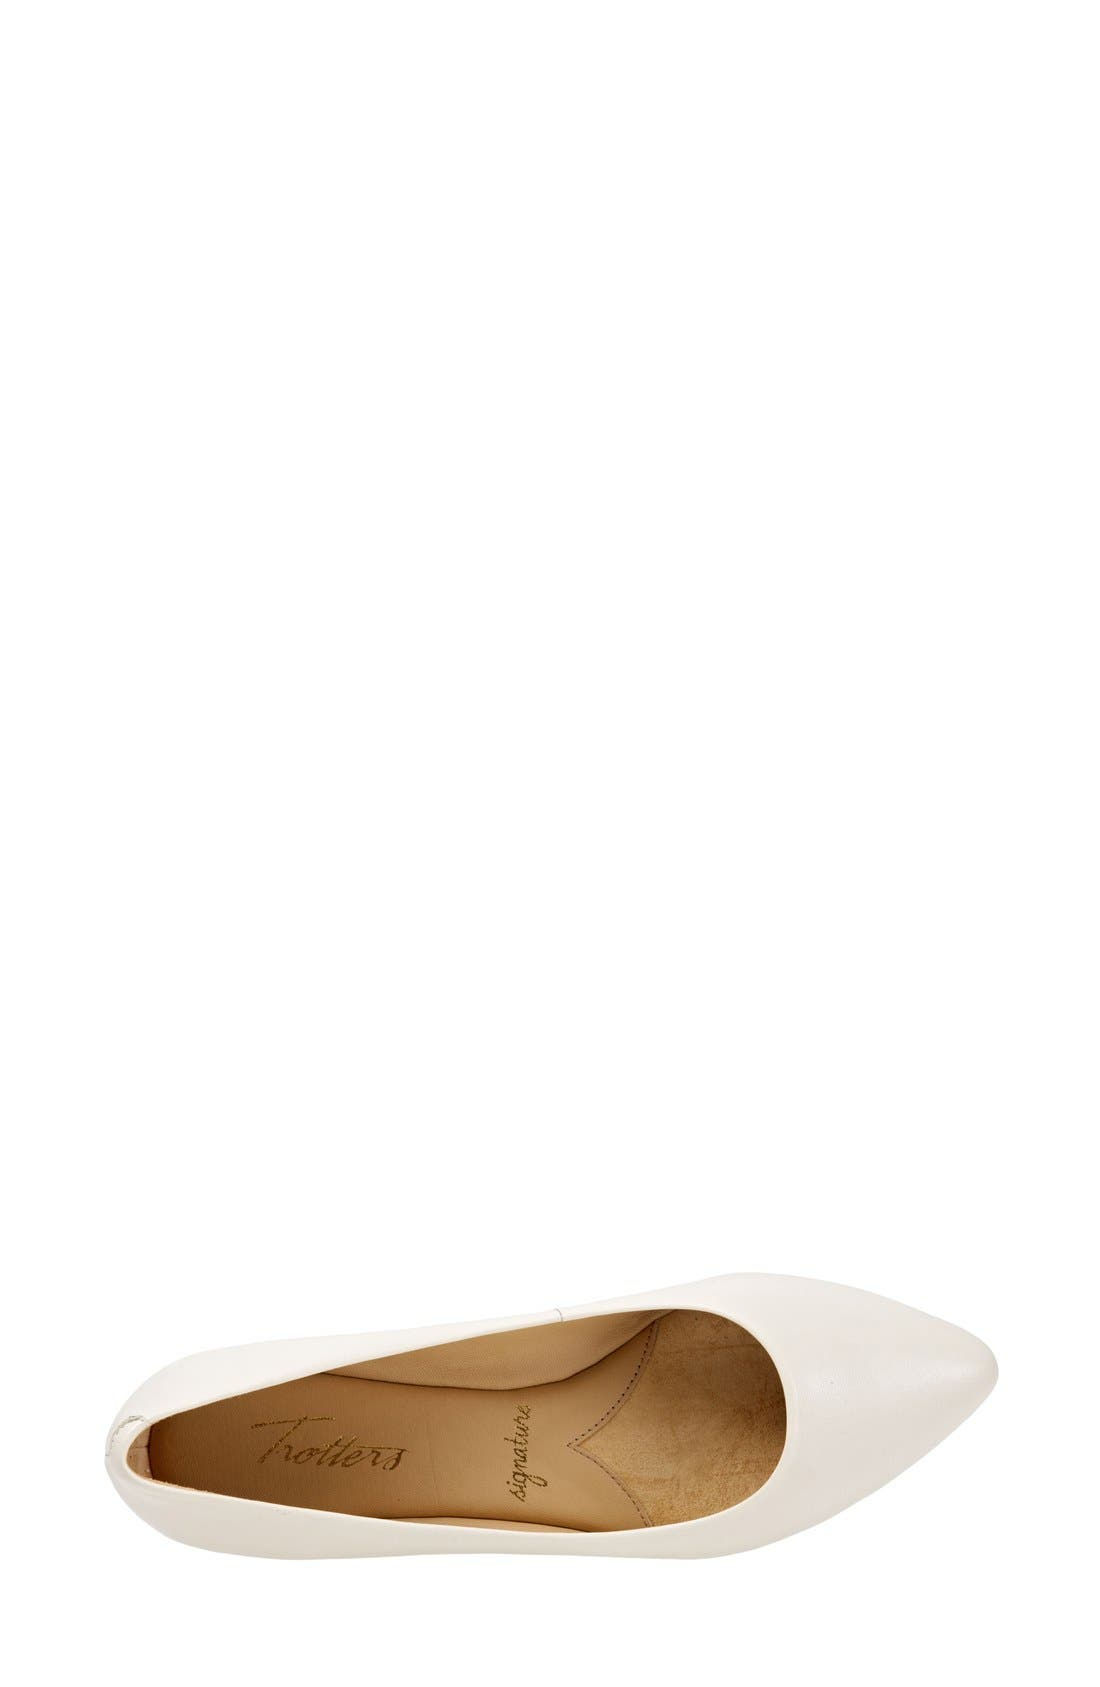 Alternate Image 3  - Trotters Estee Pointed Toe Flat (Women)